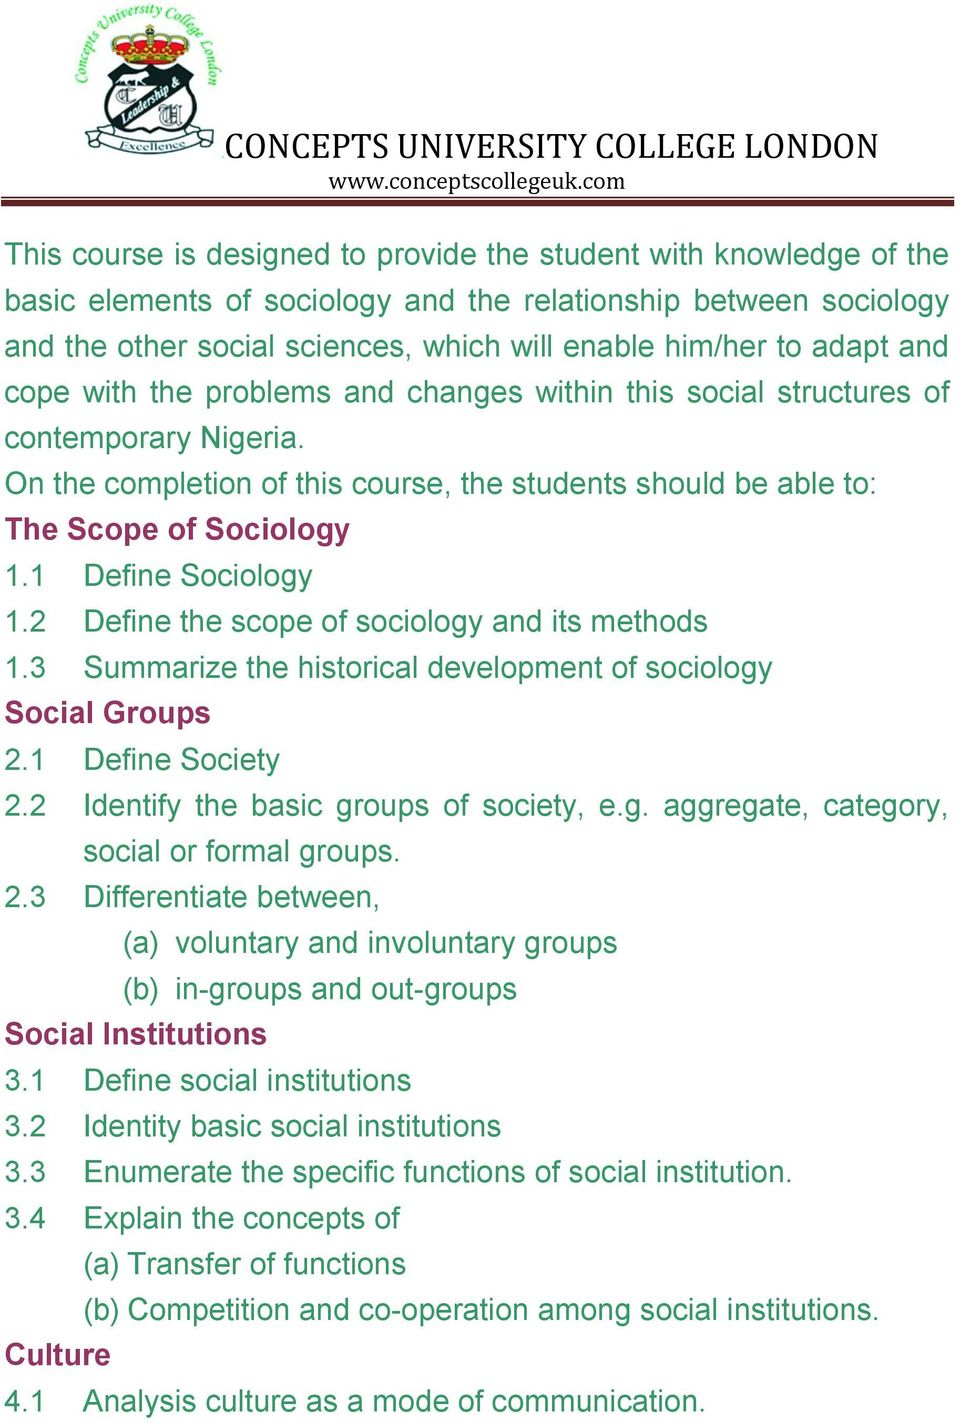 1 Define Sociology 1.2 Define the scope of sociology and its methods 1.3 Summarize the historical development of sociology Social Groups 2.1 Define Society 2.2 Identify the basic groups of society, e.